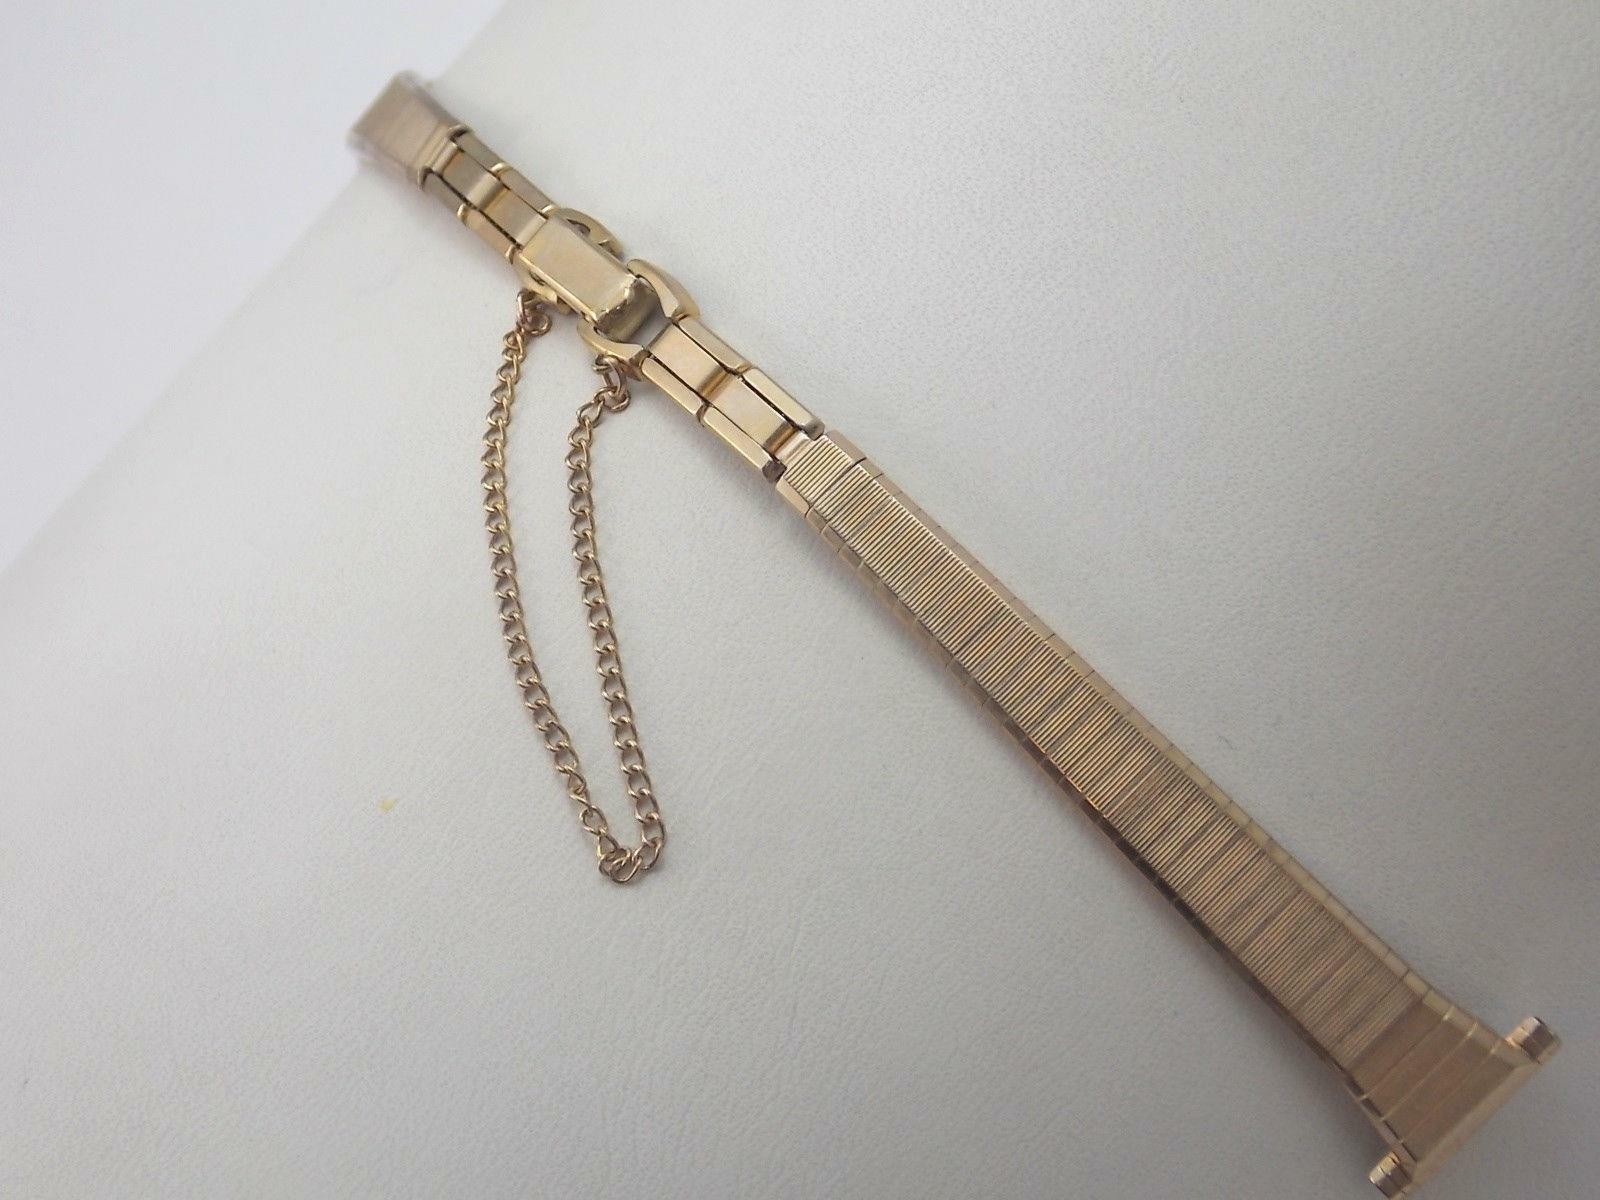 """Speidel 13mm 1/2"""" Ladies Vintage Watch Band Rolled Gold Butterfly Clasp NOS"""